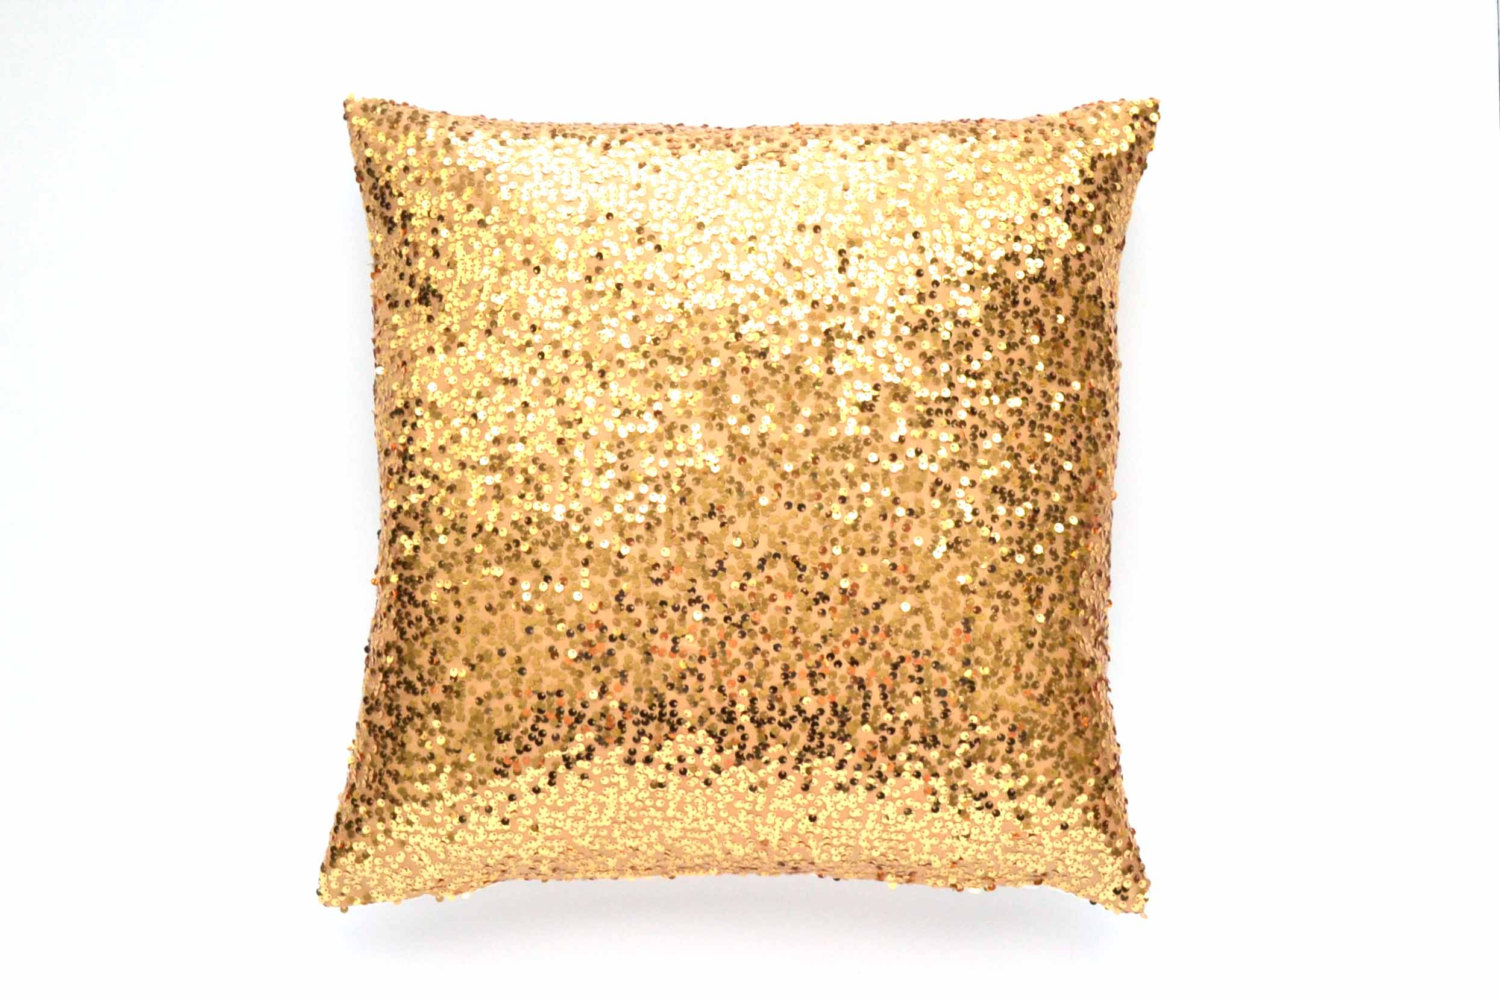 Gold Throw Pillows | Throw Pillows for Bed | Target Decorative Pillows